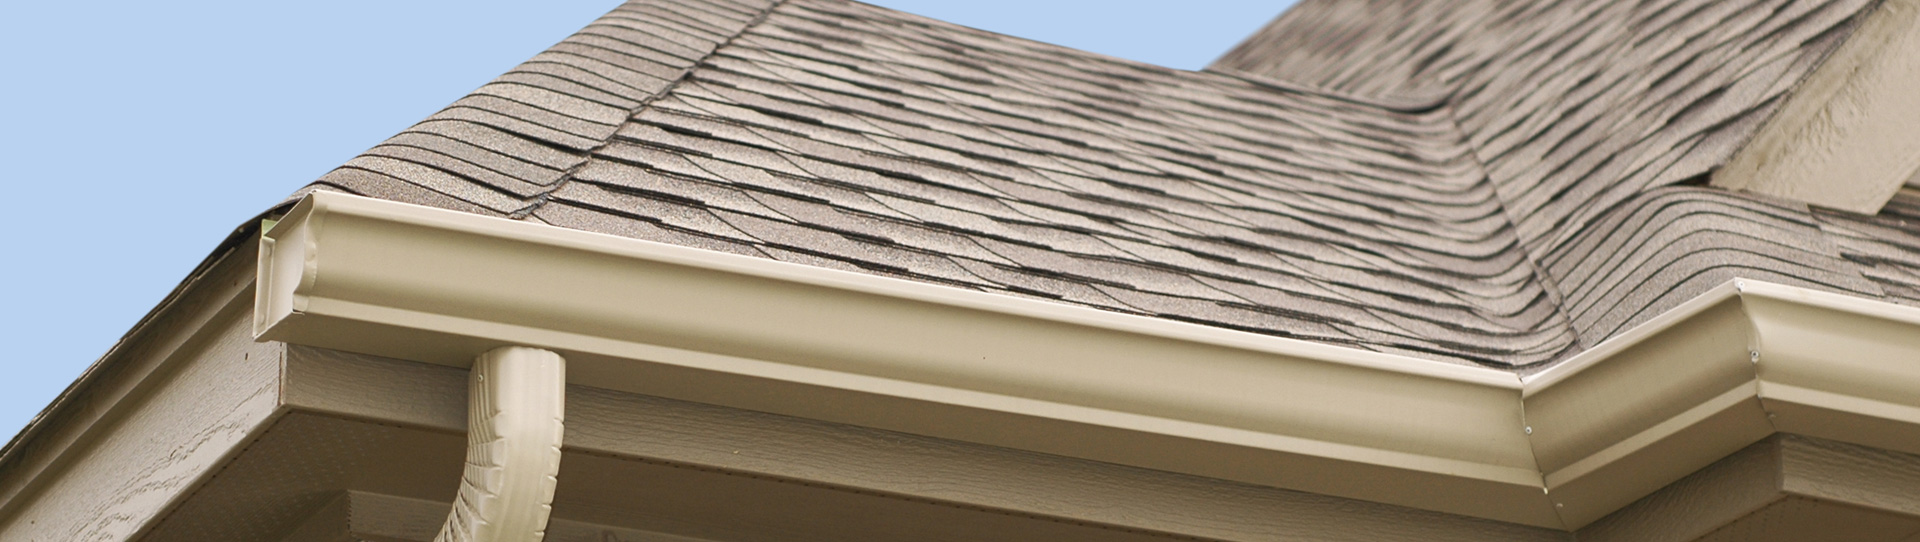 Strothers & Sons Roofing Company